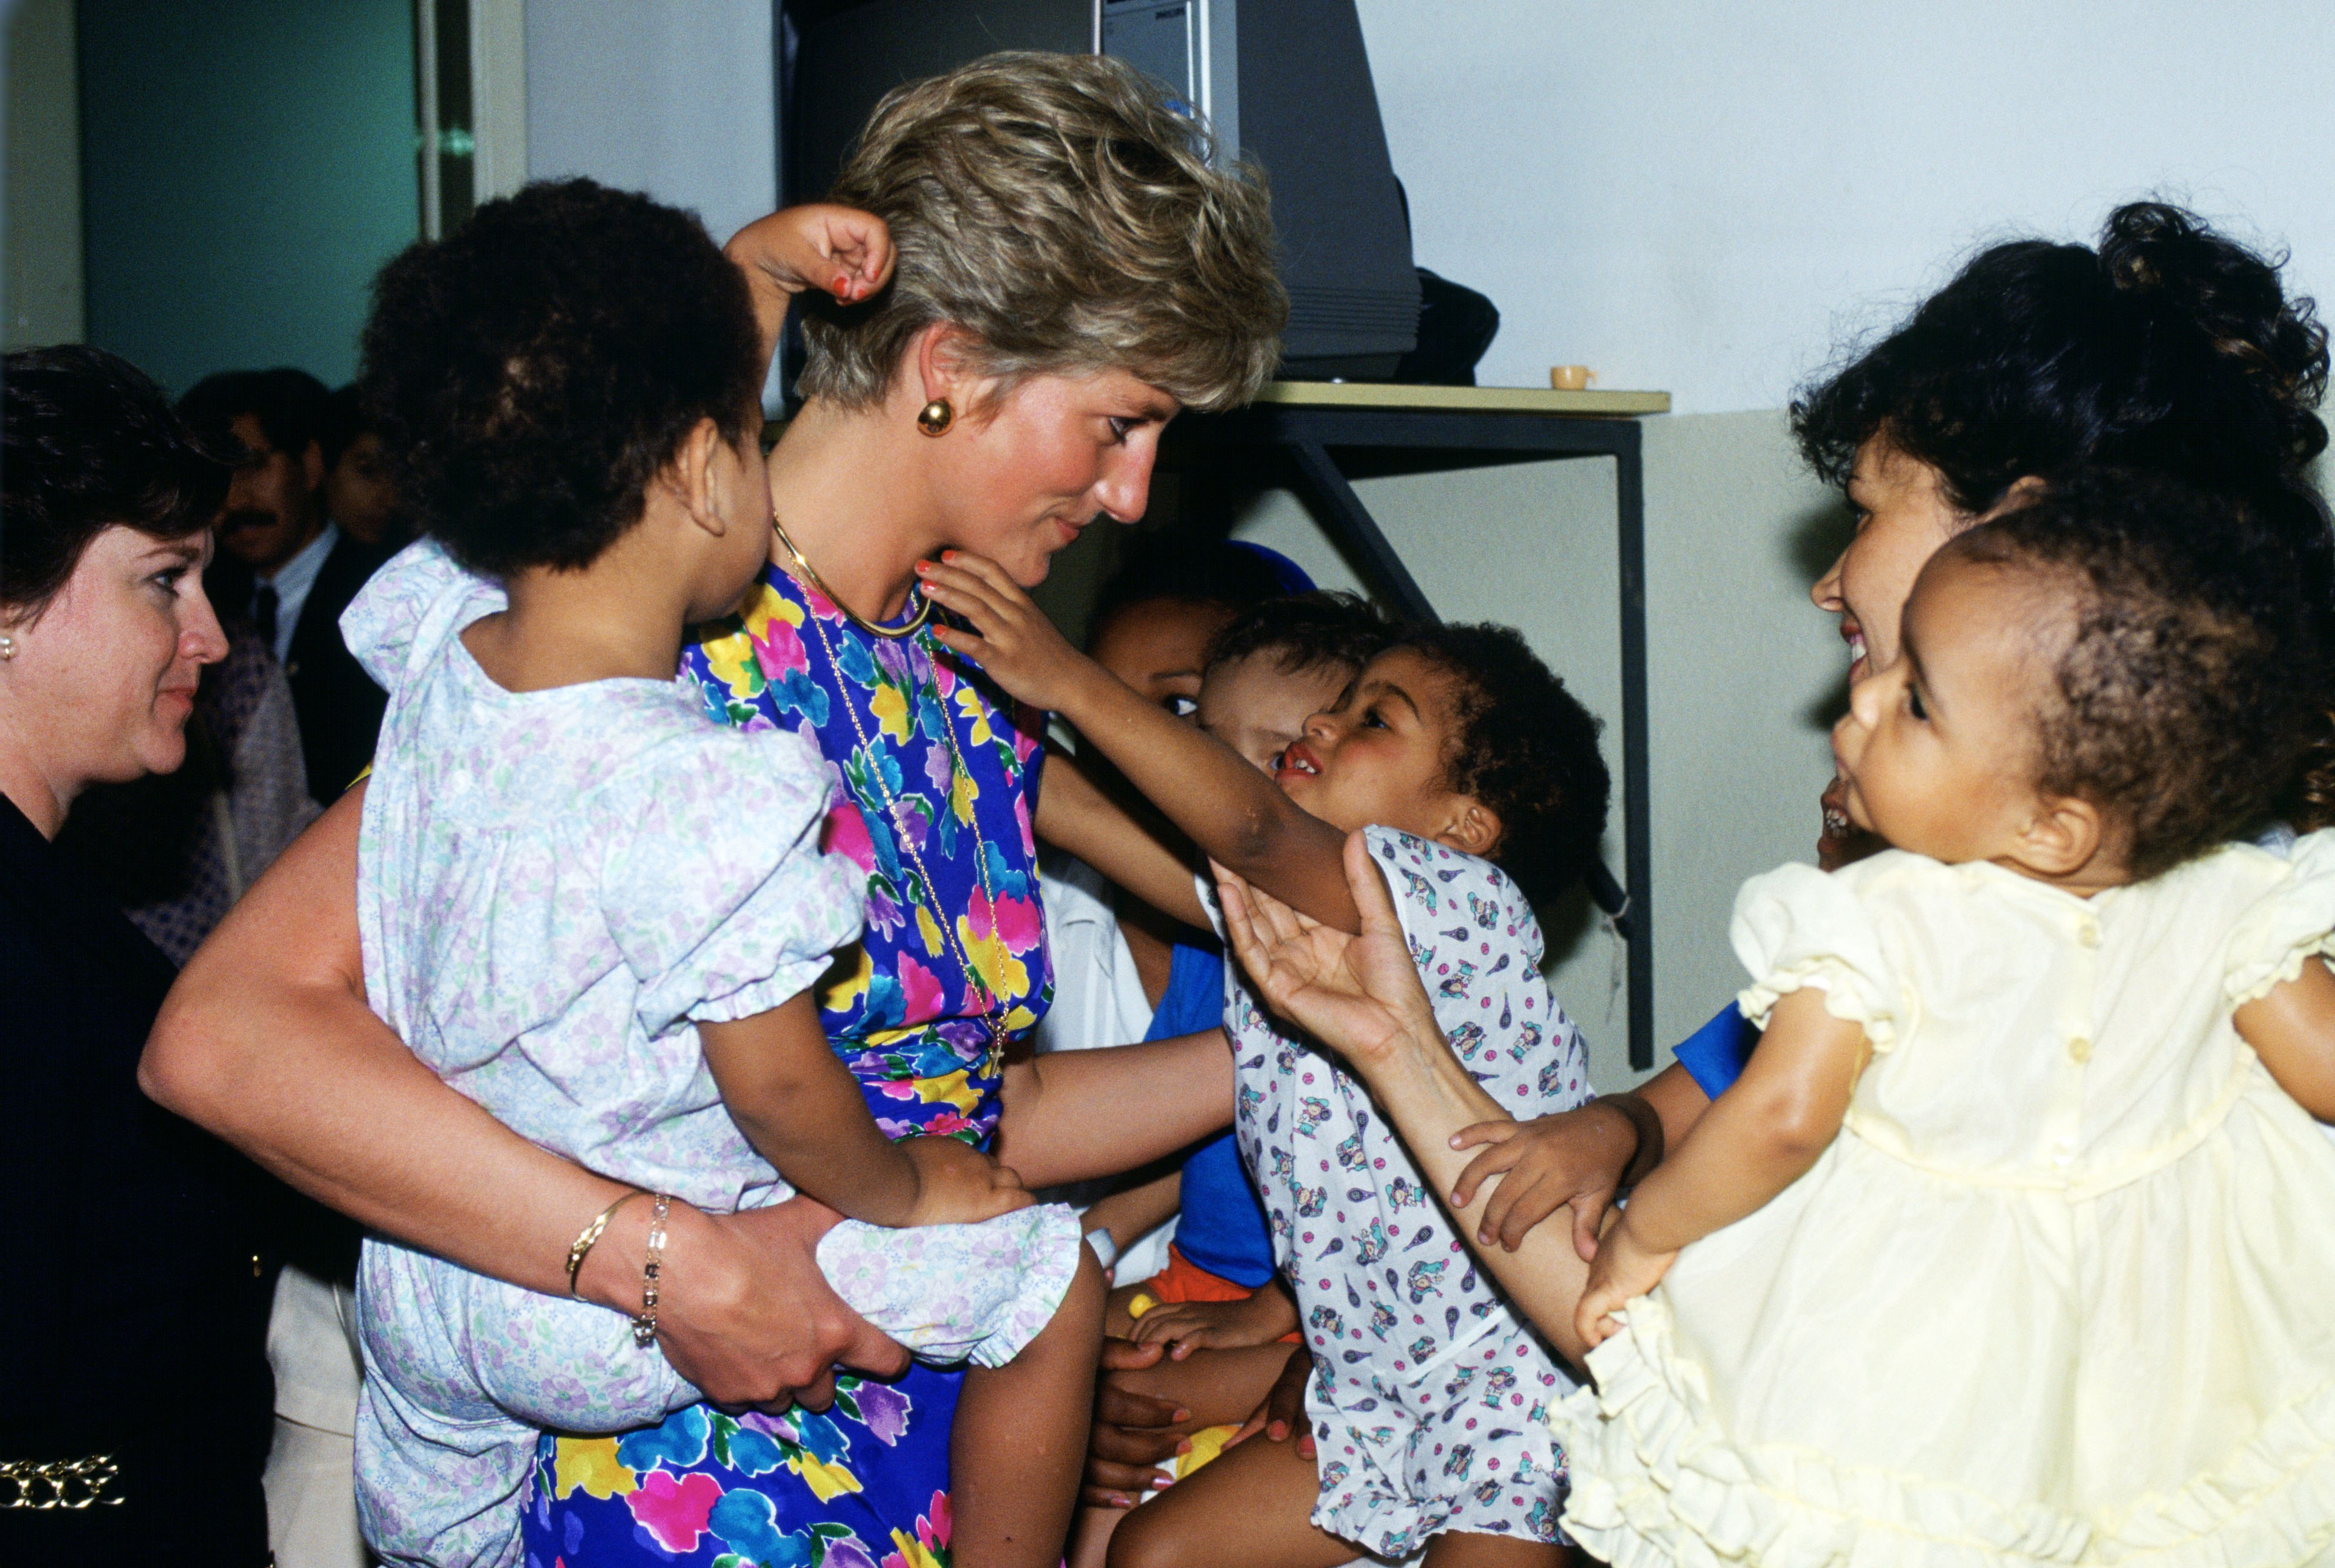 BRAZIL - APRIL 24: Diana, Princess of Wales visits a hostel for abandoned children in Sao Paulo, Brazil, many of them HIV positive or suffering from AIDS